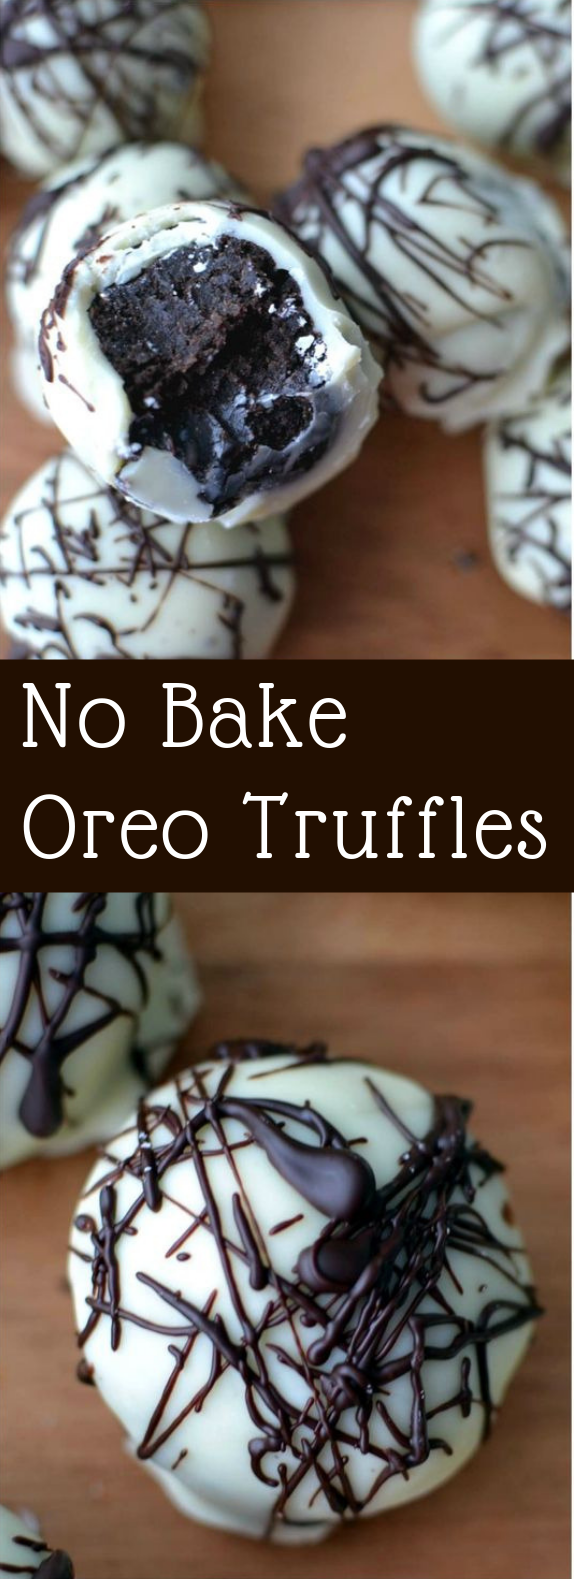 These no bake Oreo Truffles have a sweet outer chocolate shell that surrounds a decadent, chocolate Oreo filling- and only 4 ingredients needed! #nobake #oreo #truffles #chocolate #desserts #oreotruffles